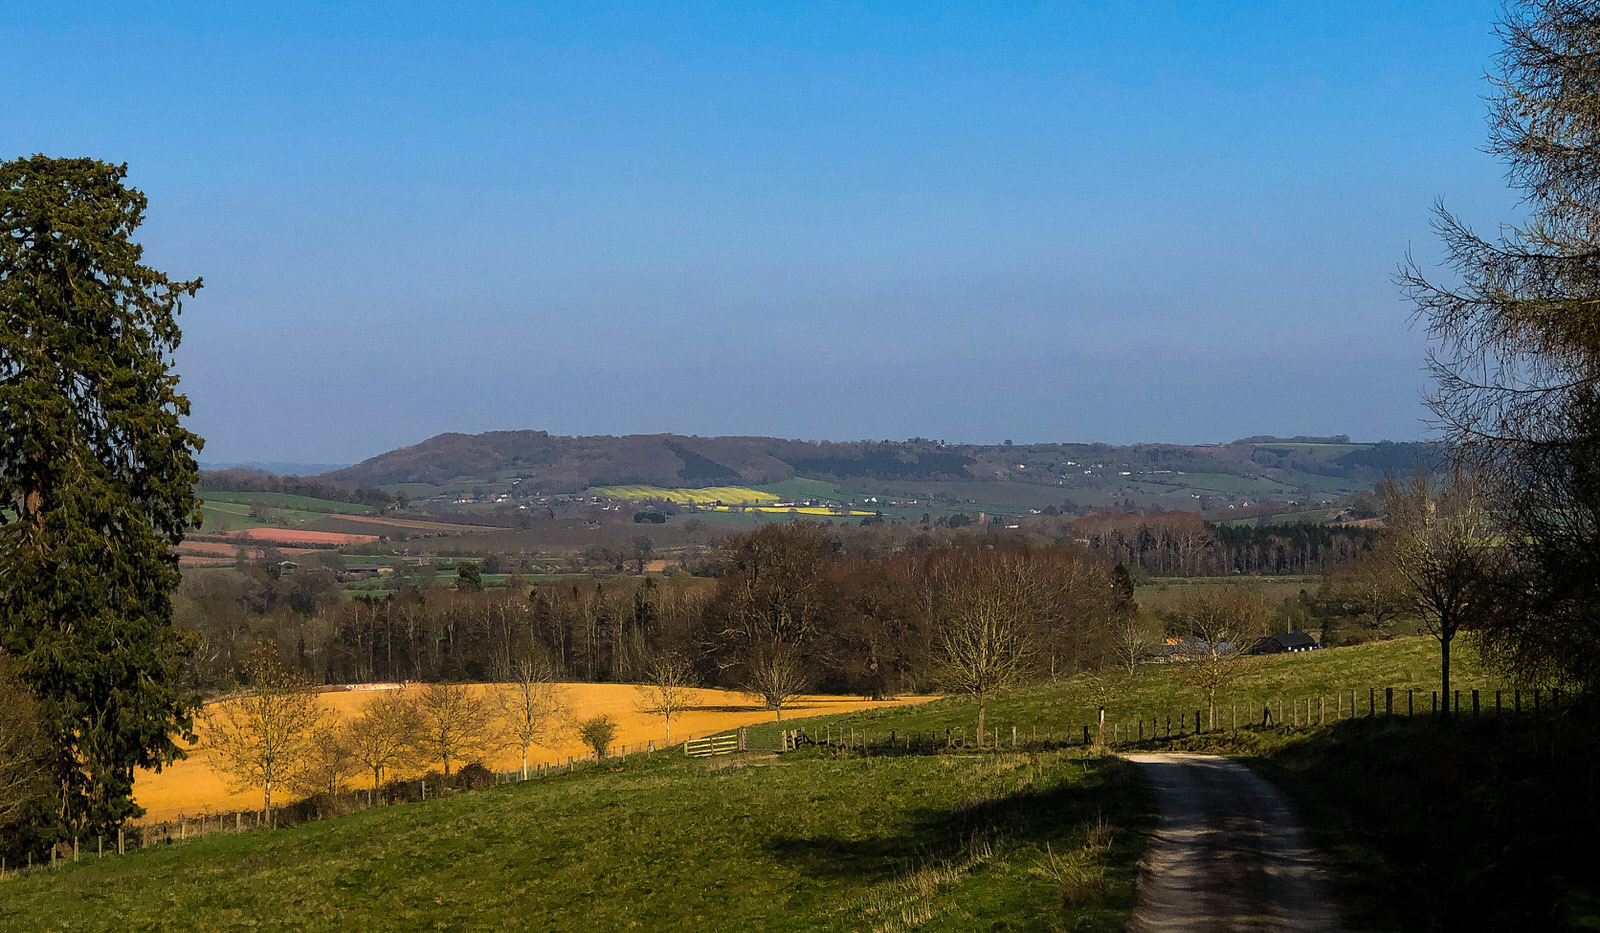 View of fields and hills beyond, NW Herefordshire